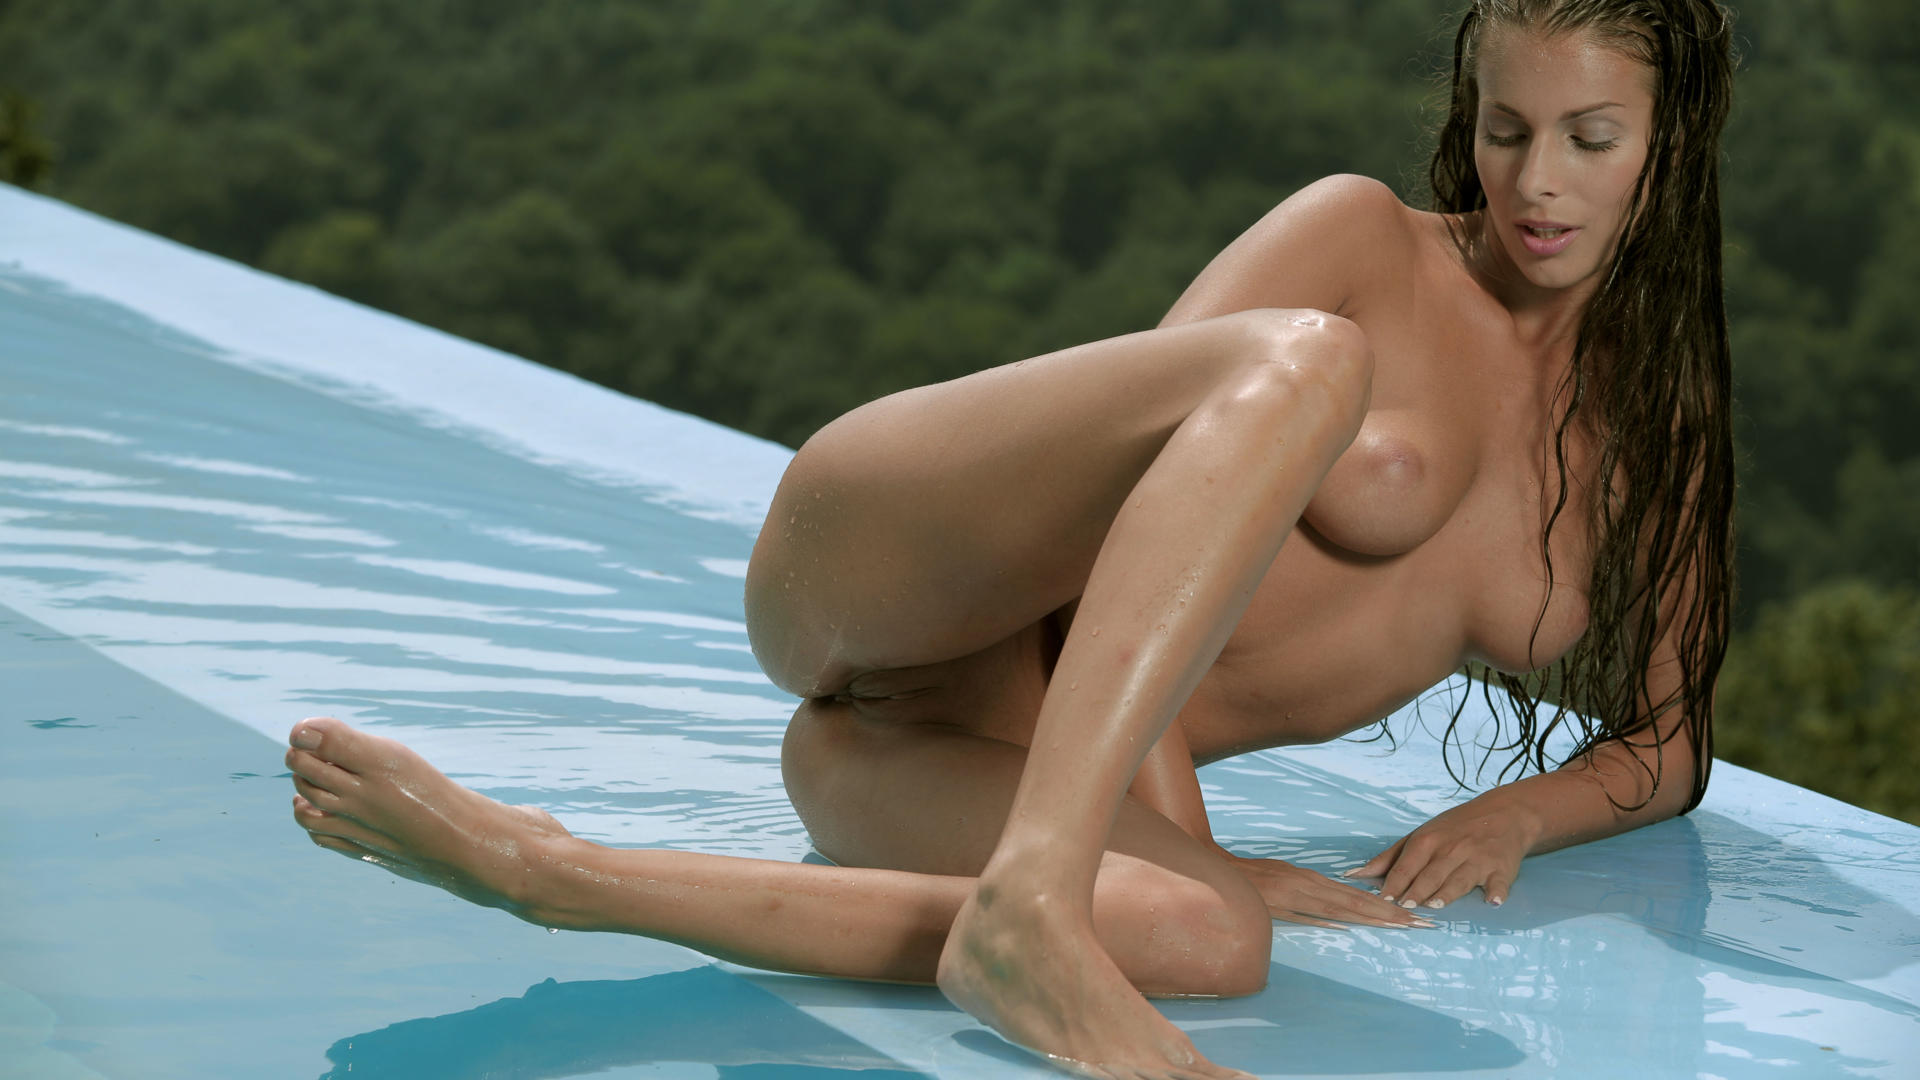 Can Lia may nude wallpaper 1920 x 1080